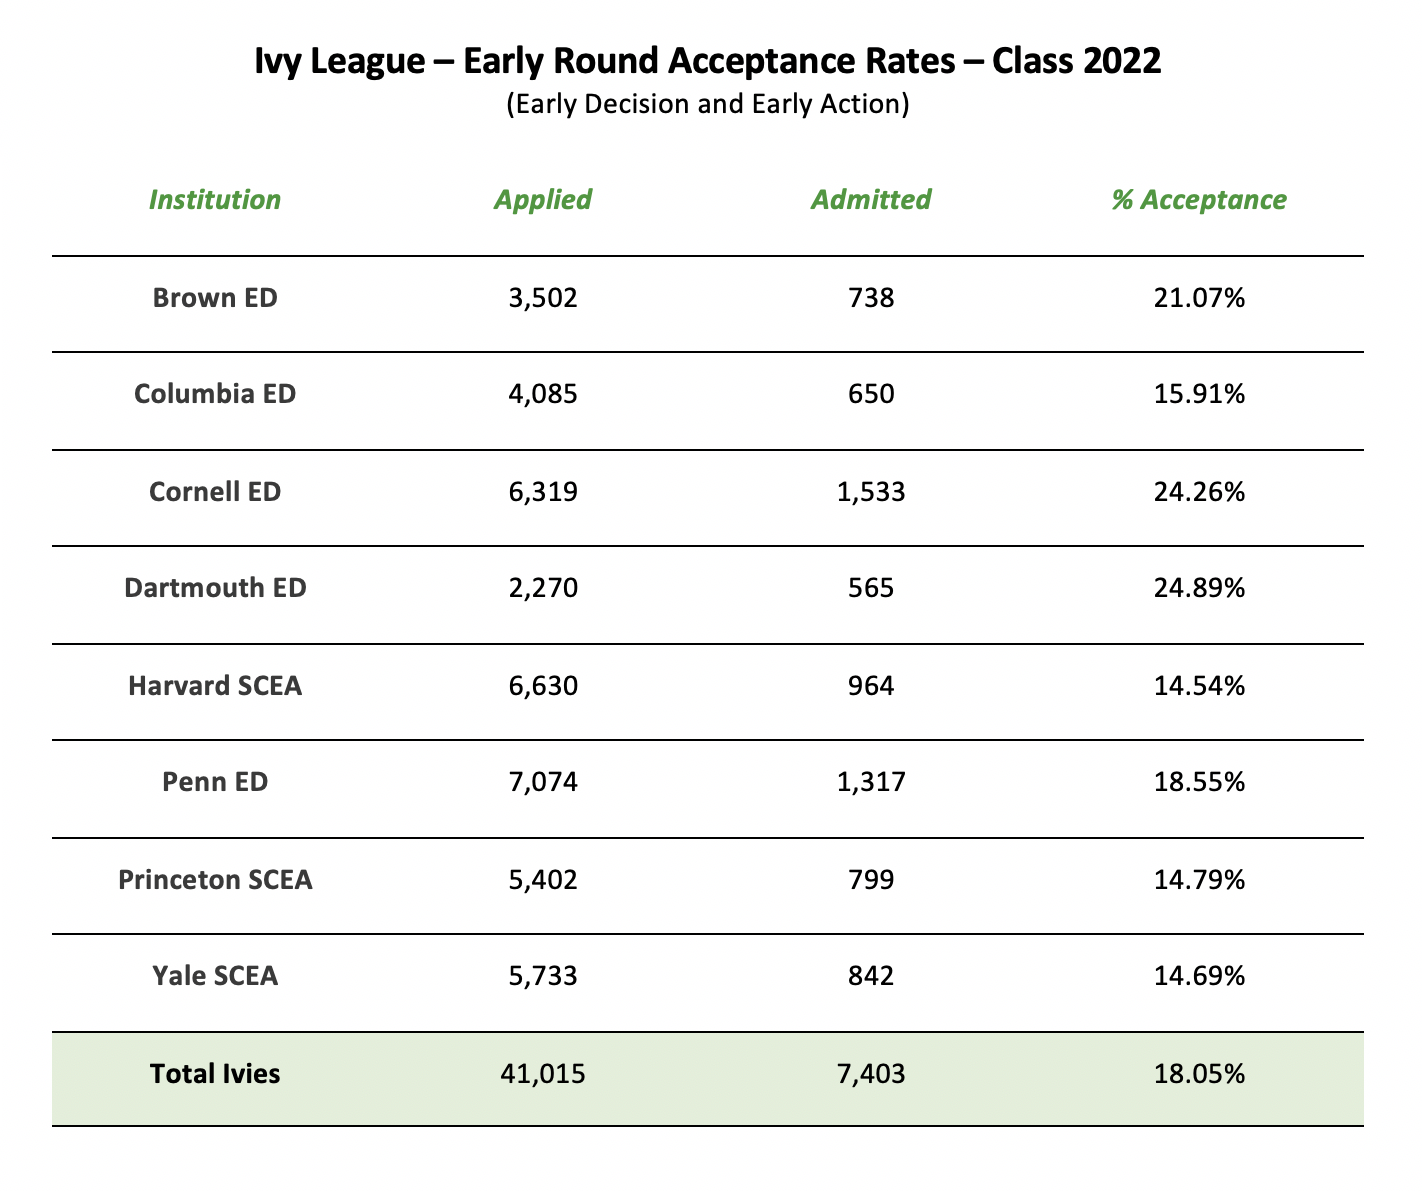 Ivy League Early Round Acceptance Rates